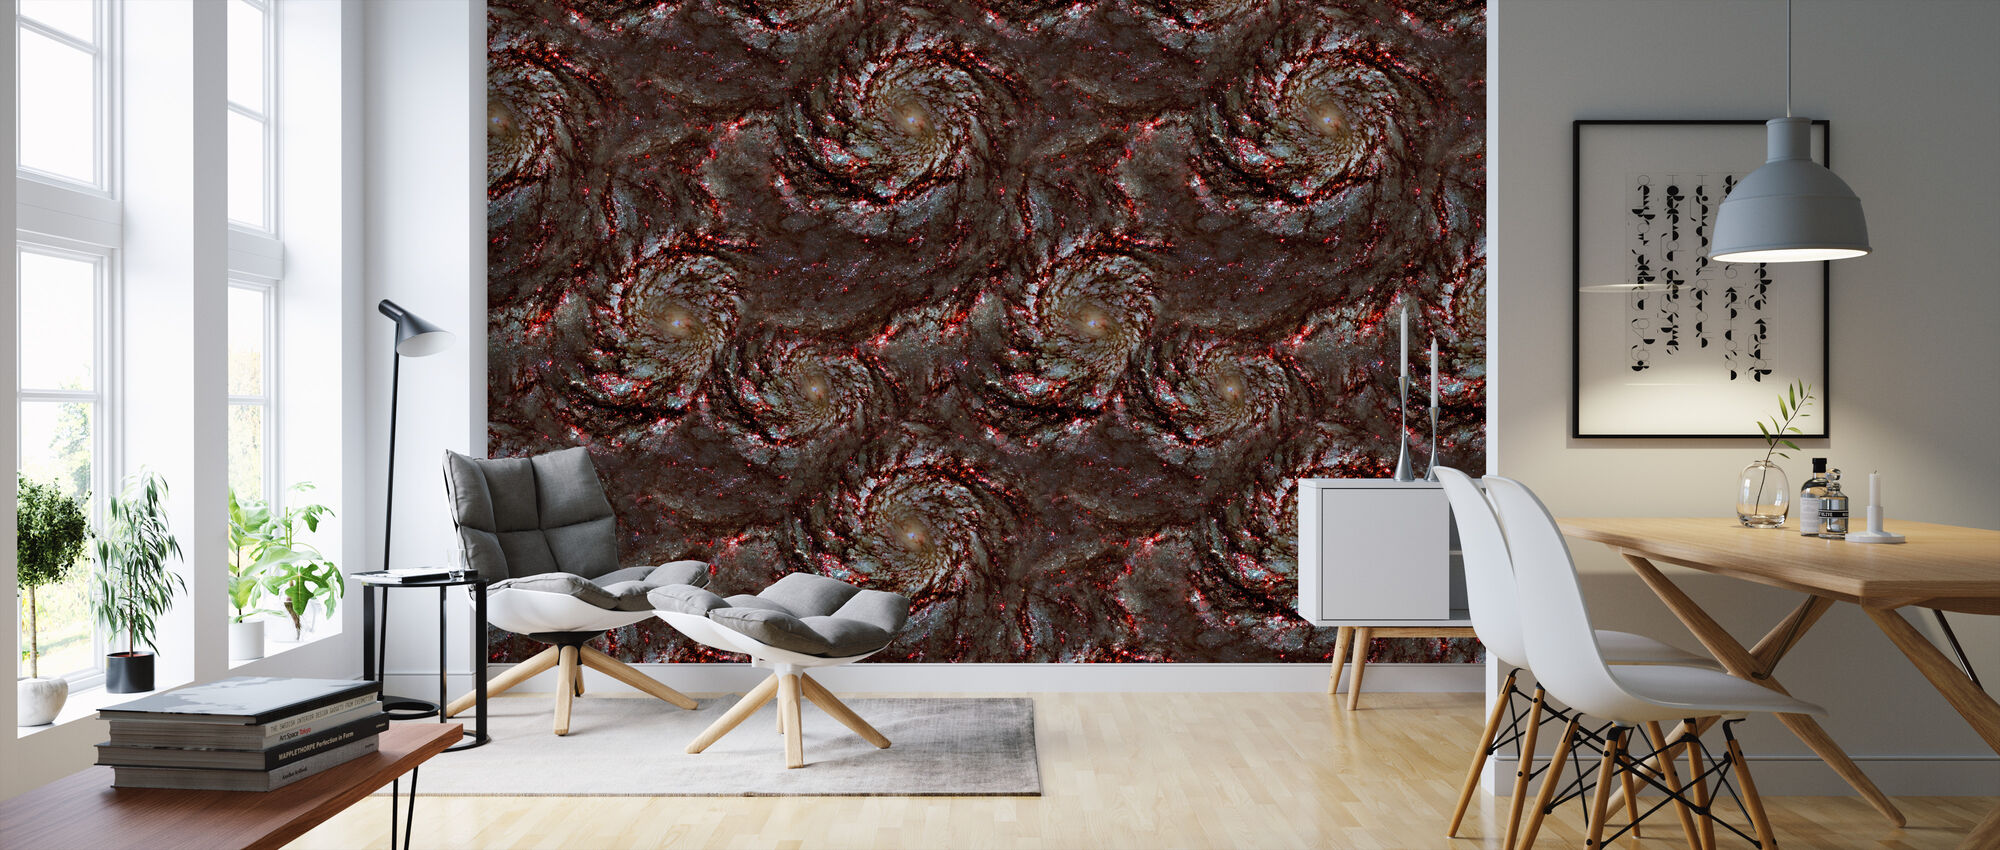 Red Swirl - Wallpaper - Living Room